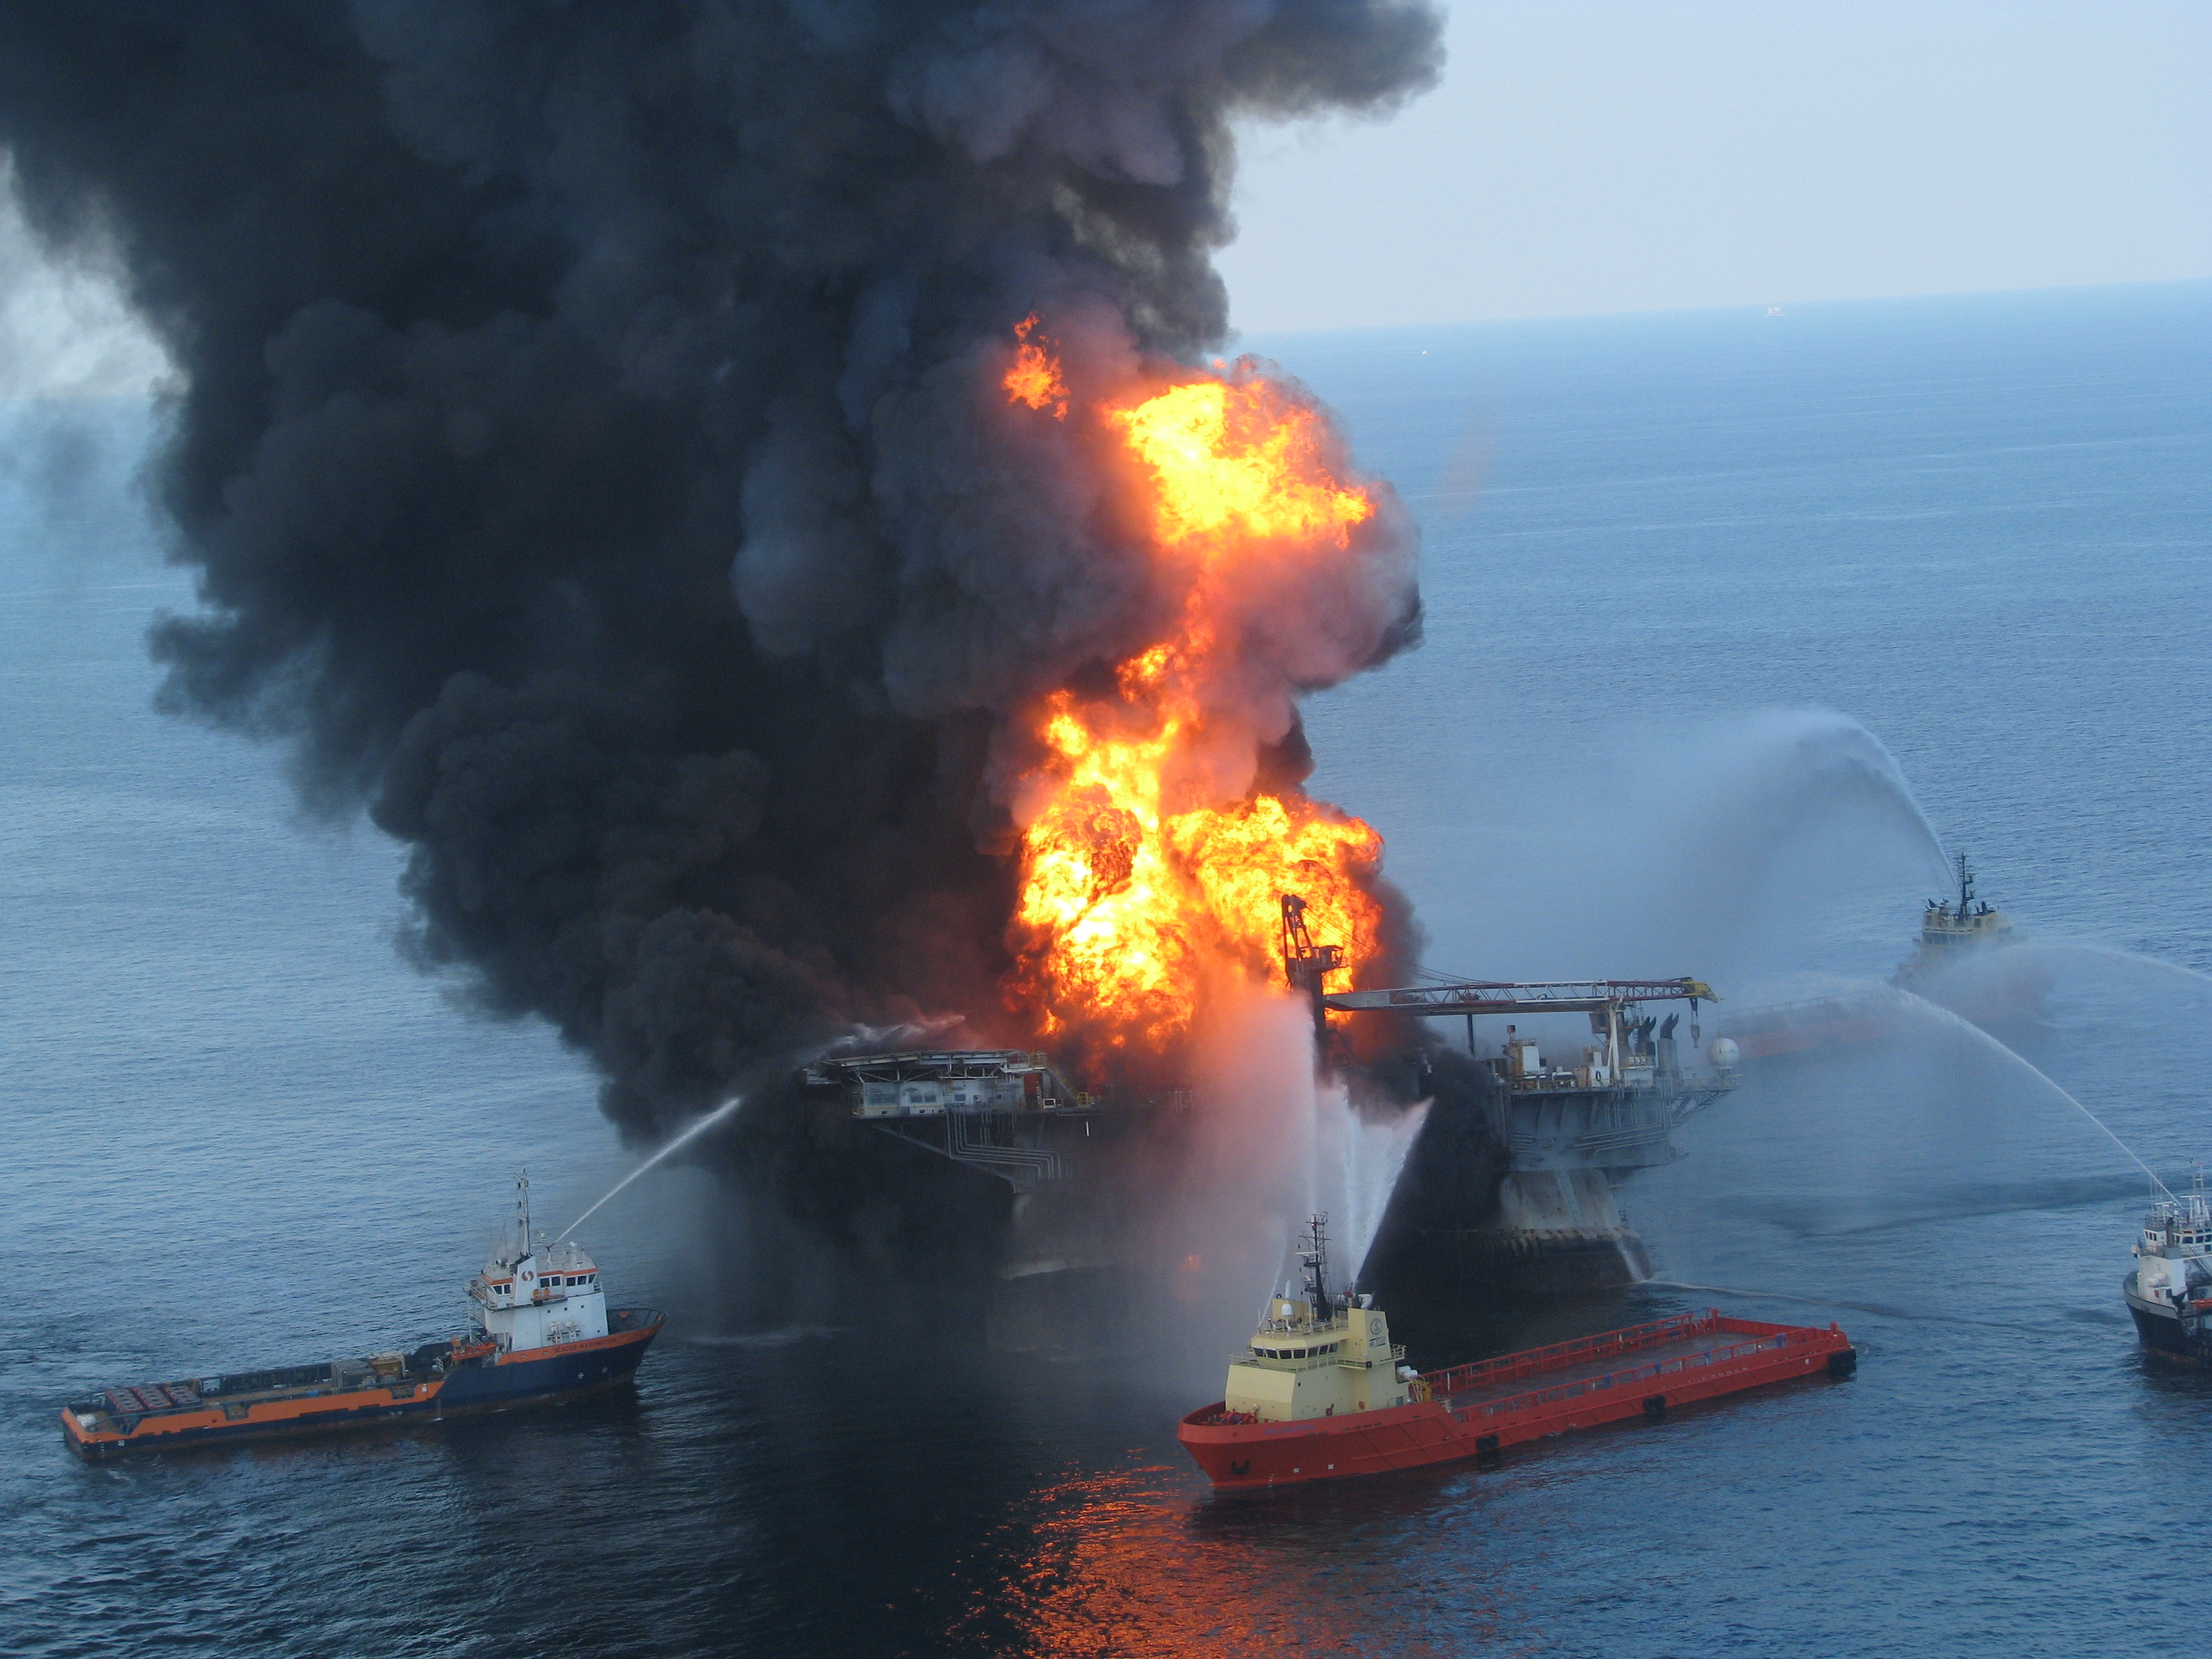 An explosion on an oil rig with several boats around it.